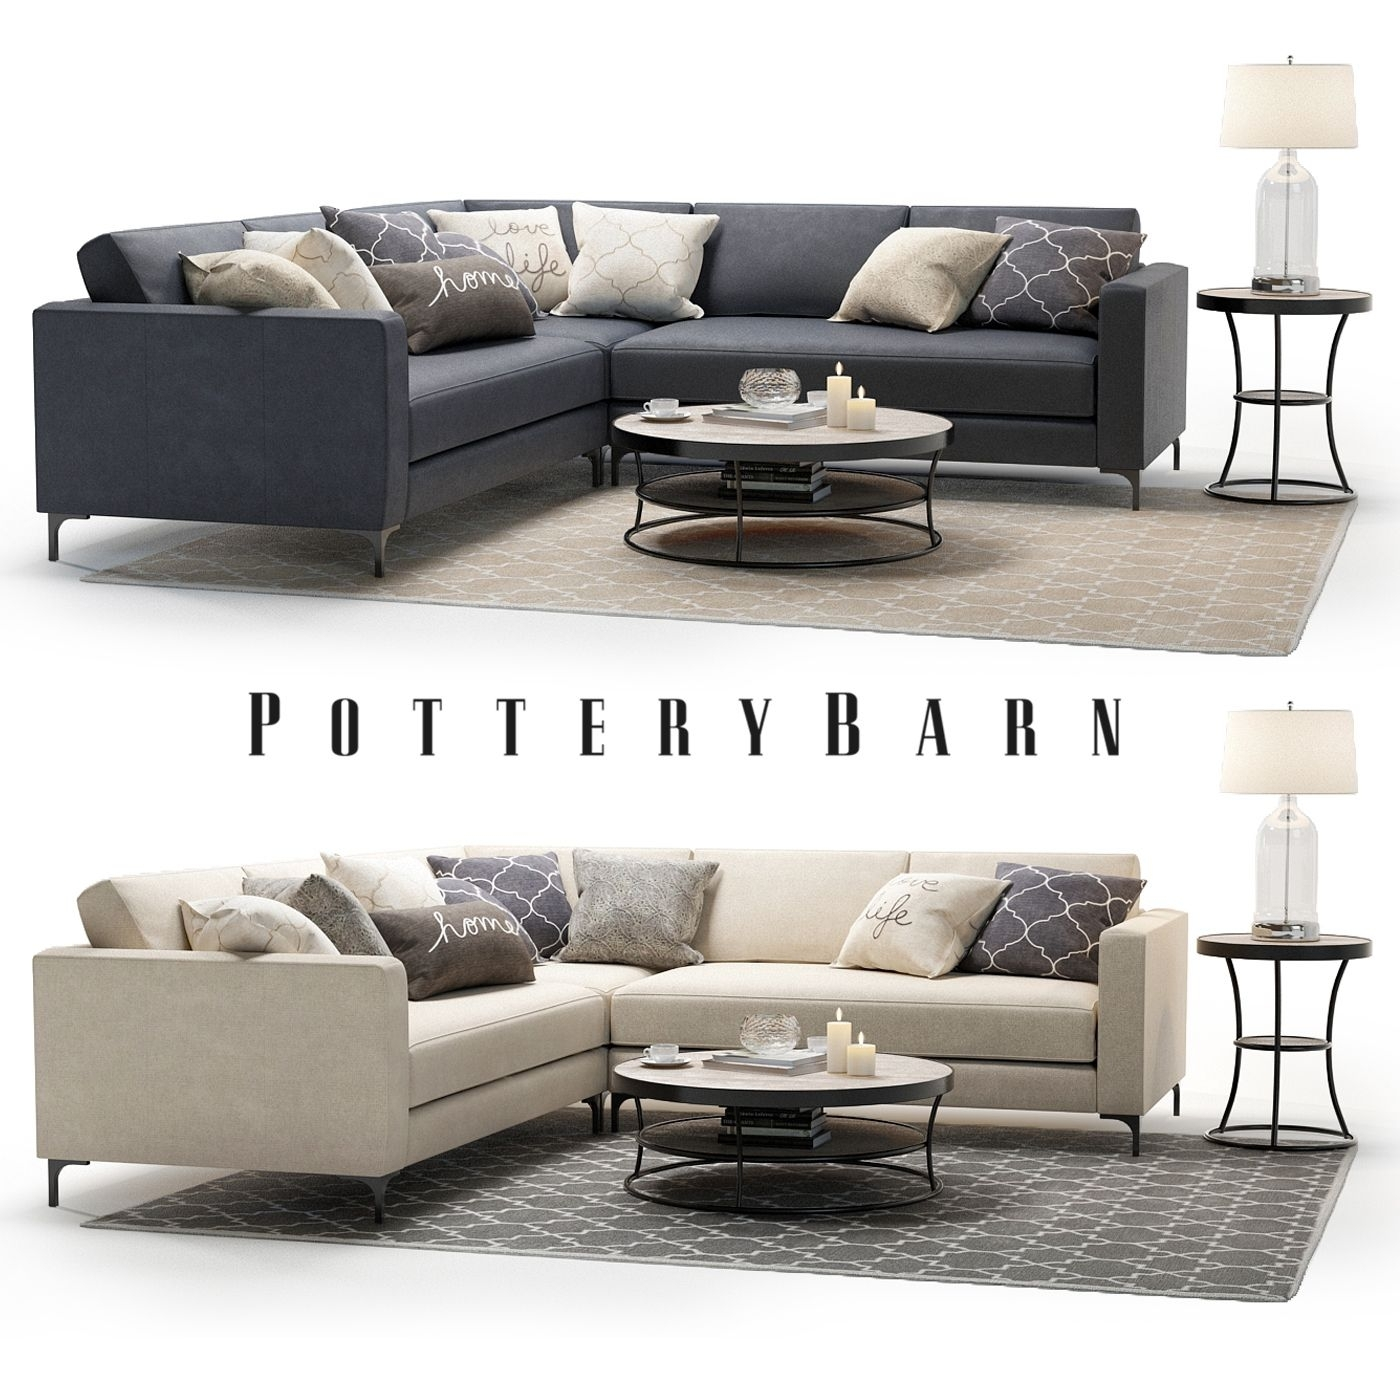 3D Model - Pottery Barn - Jake Sectional Sofa With Bartlett with Pottery Barn Sectional Sofas